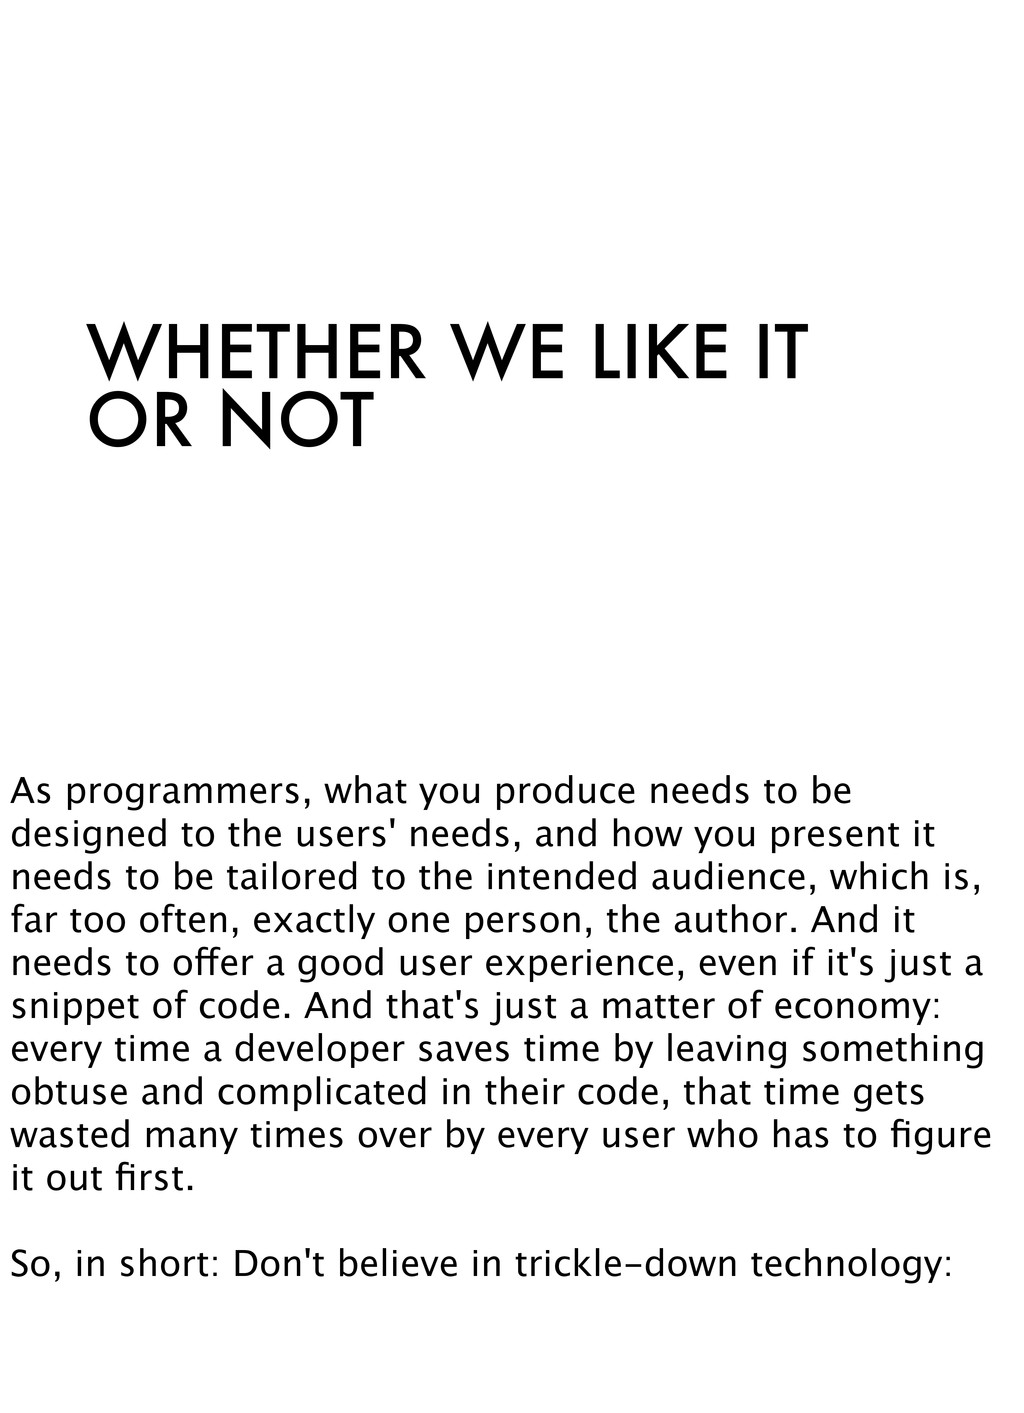 WHETHER WE LIKE IT OR NOT As programmers, what ...